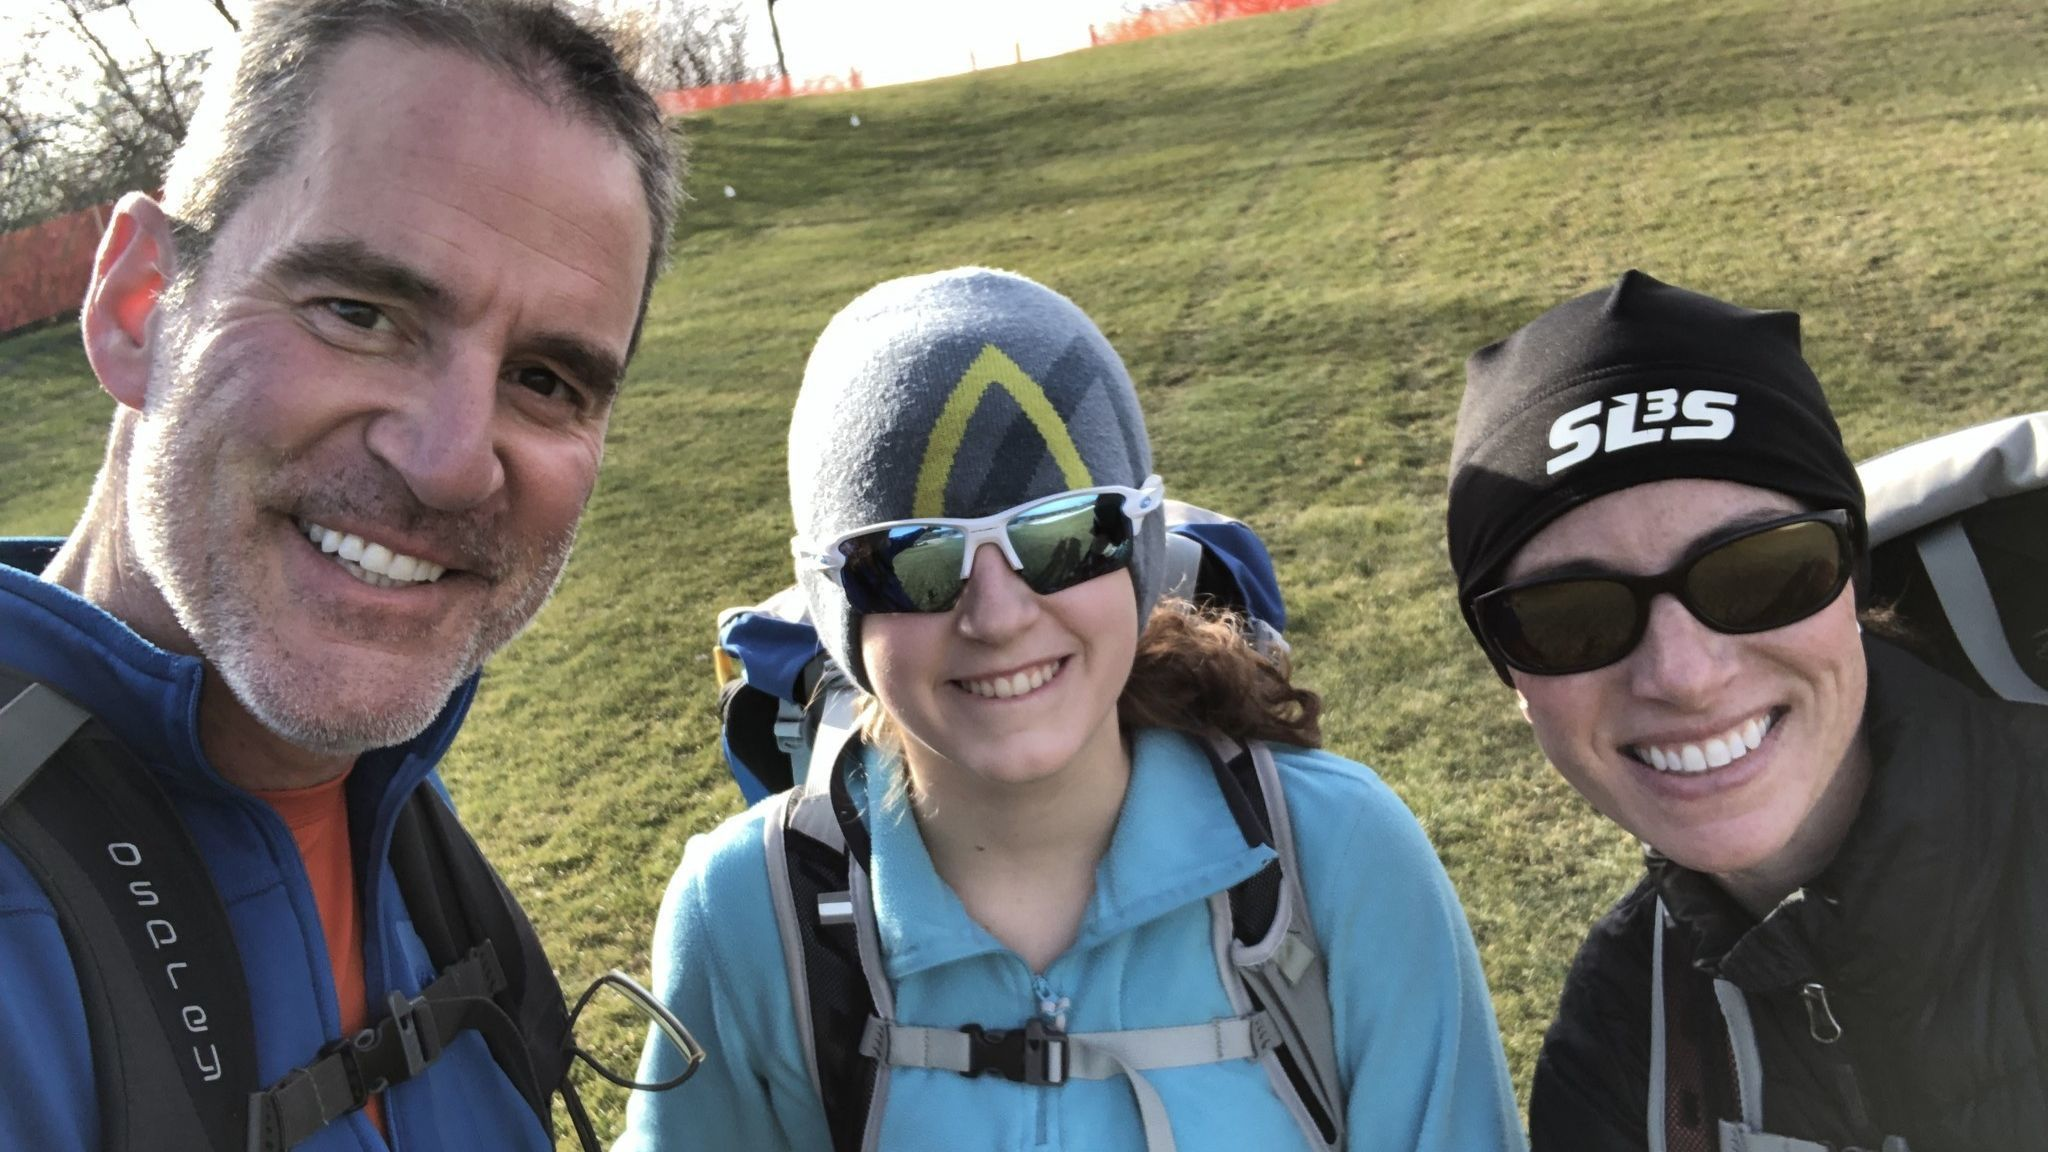 Naperville family preparing for Mount Everest climb this spring